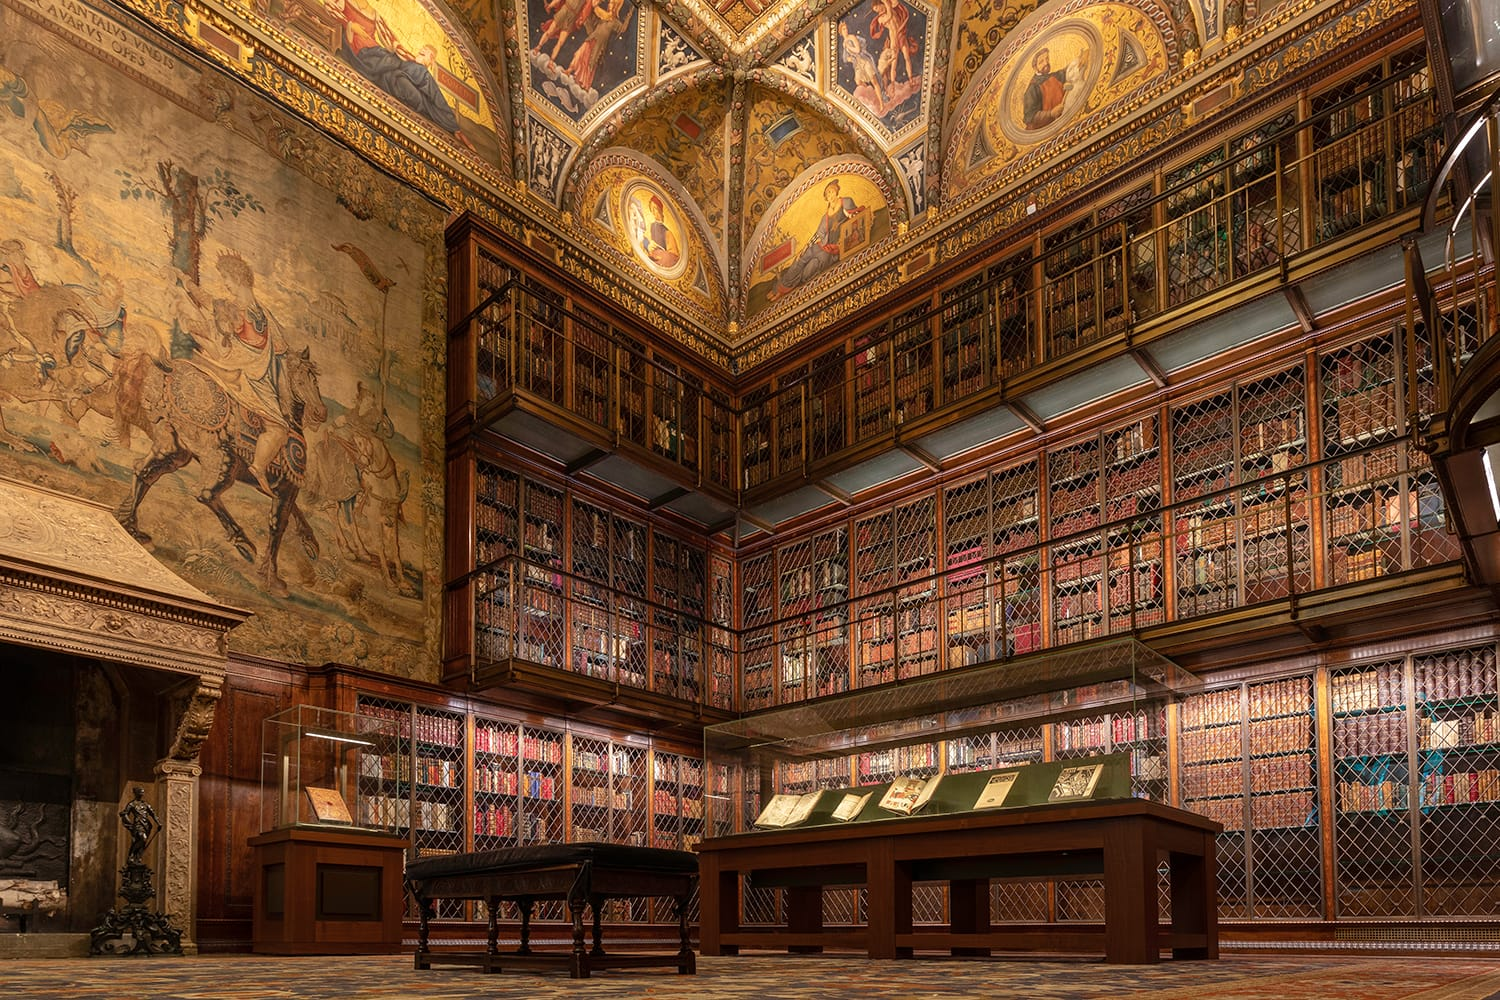 Inside the Pierpont Morgan library in New York City, USA